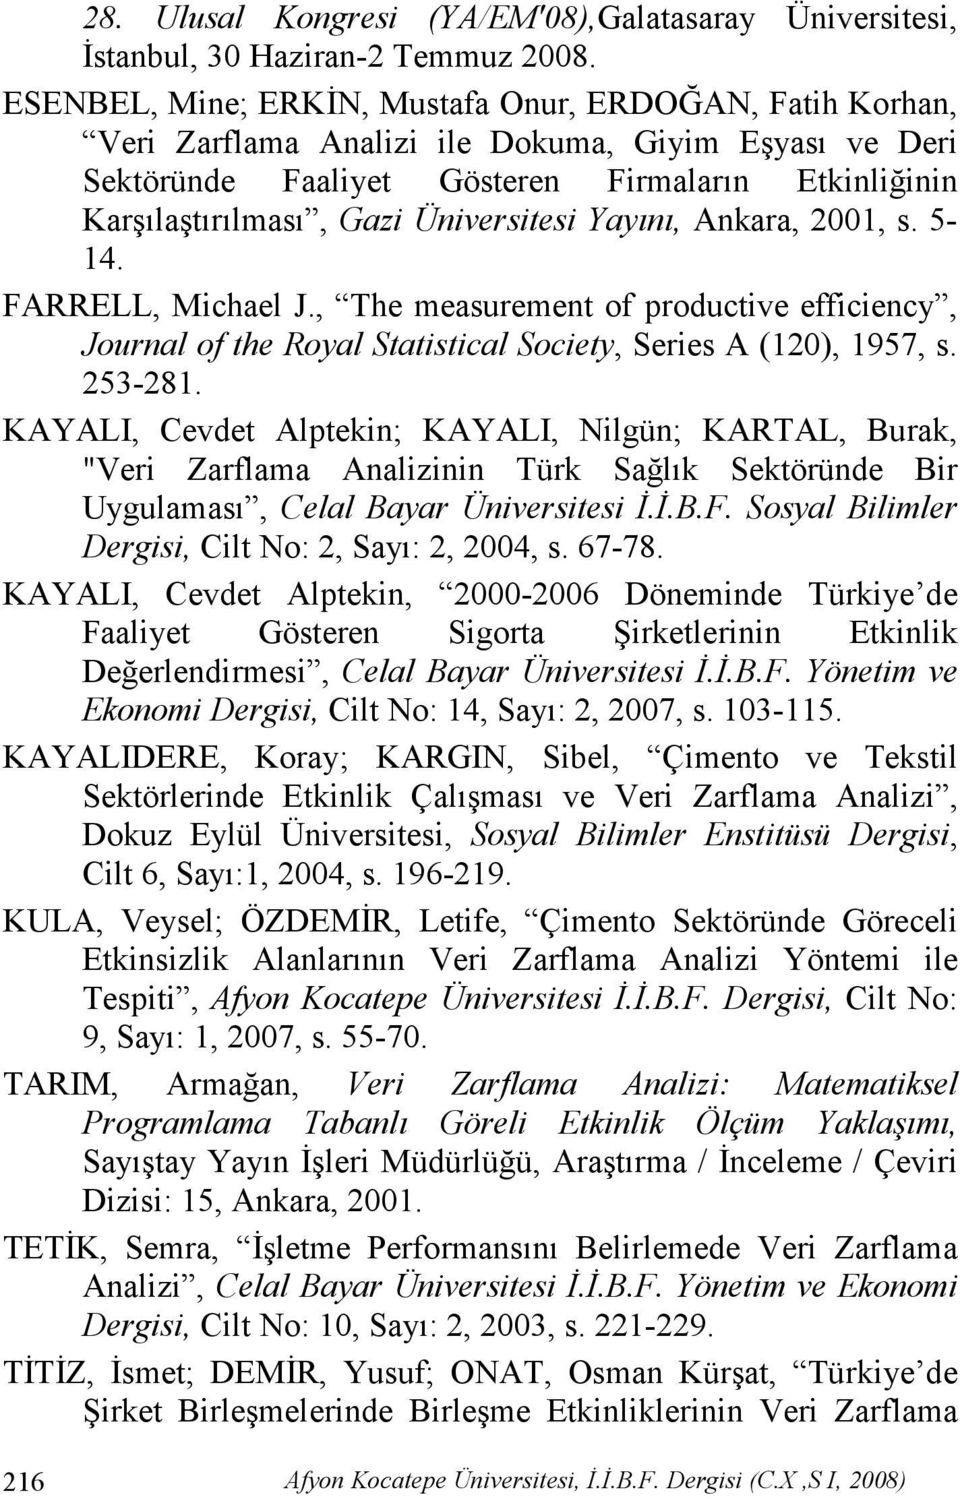 Üniversitesi Yayını, Ankara, 200, s. 5-4. FARRELL, Michael J., The measurement of productive efficiency, Journal of the Royal Statistical Society, Series A (20), 957, s. 253-28.